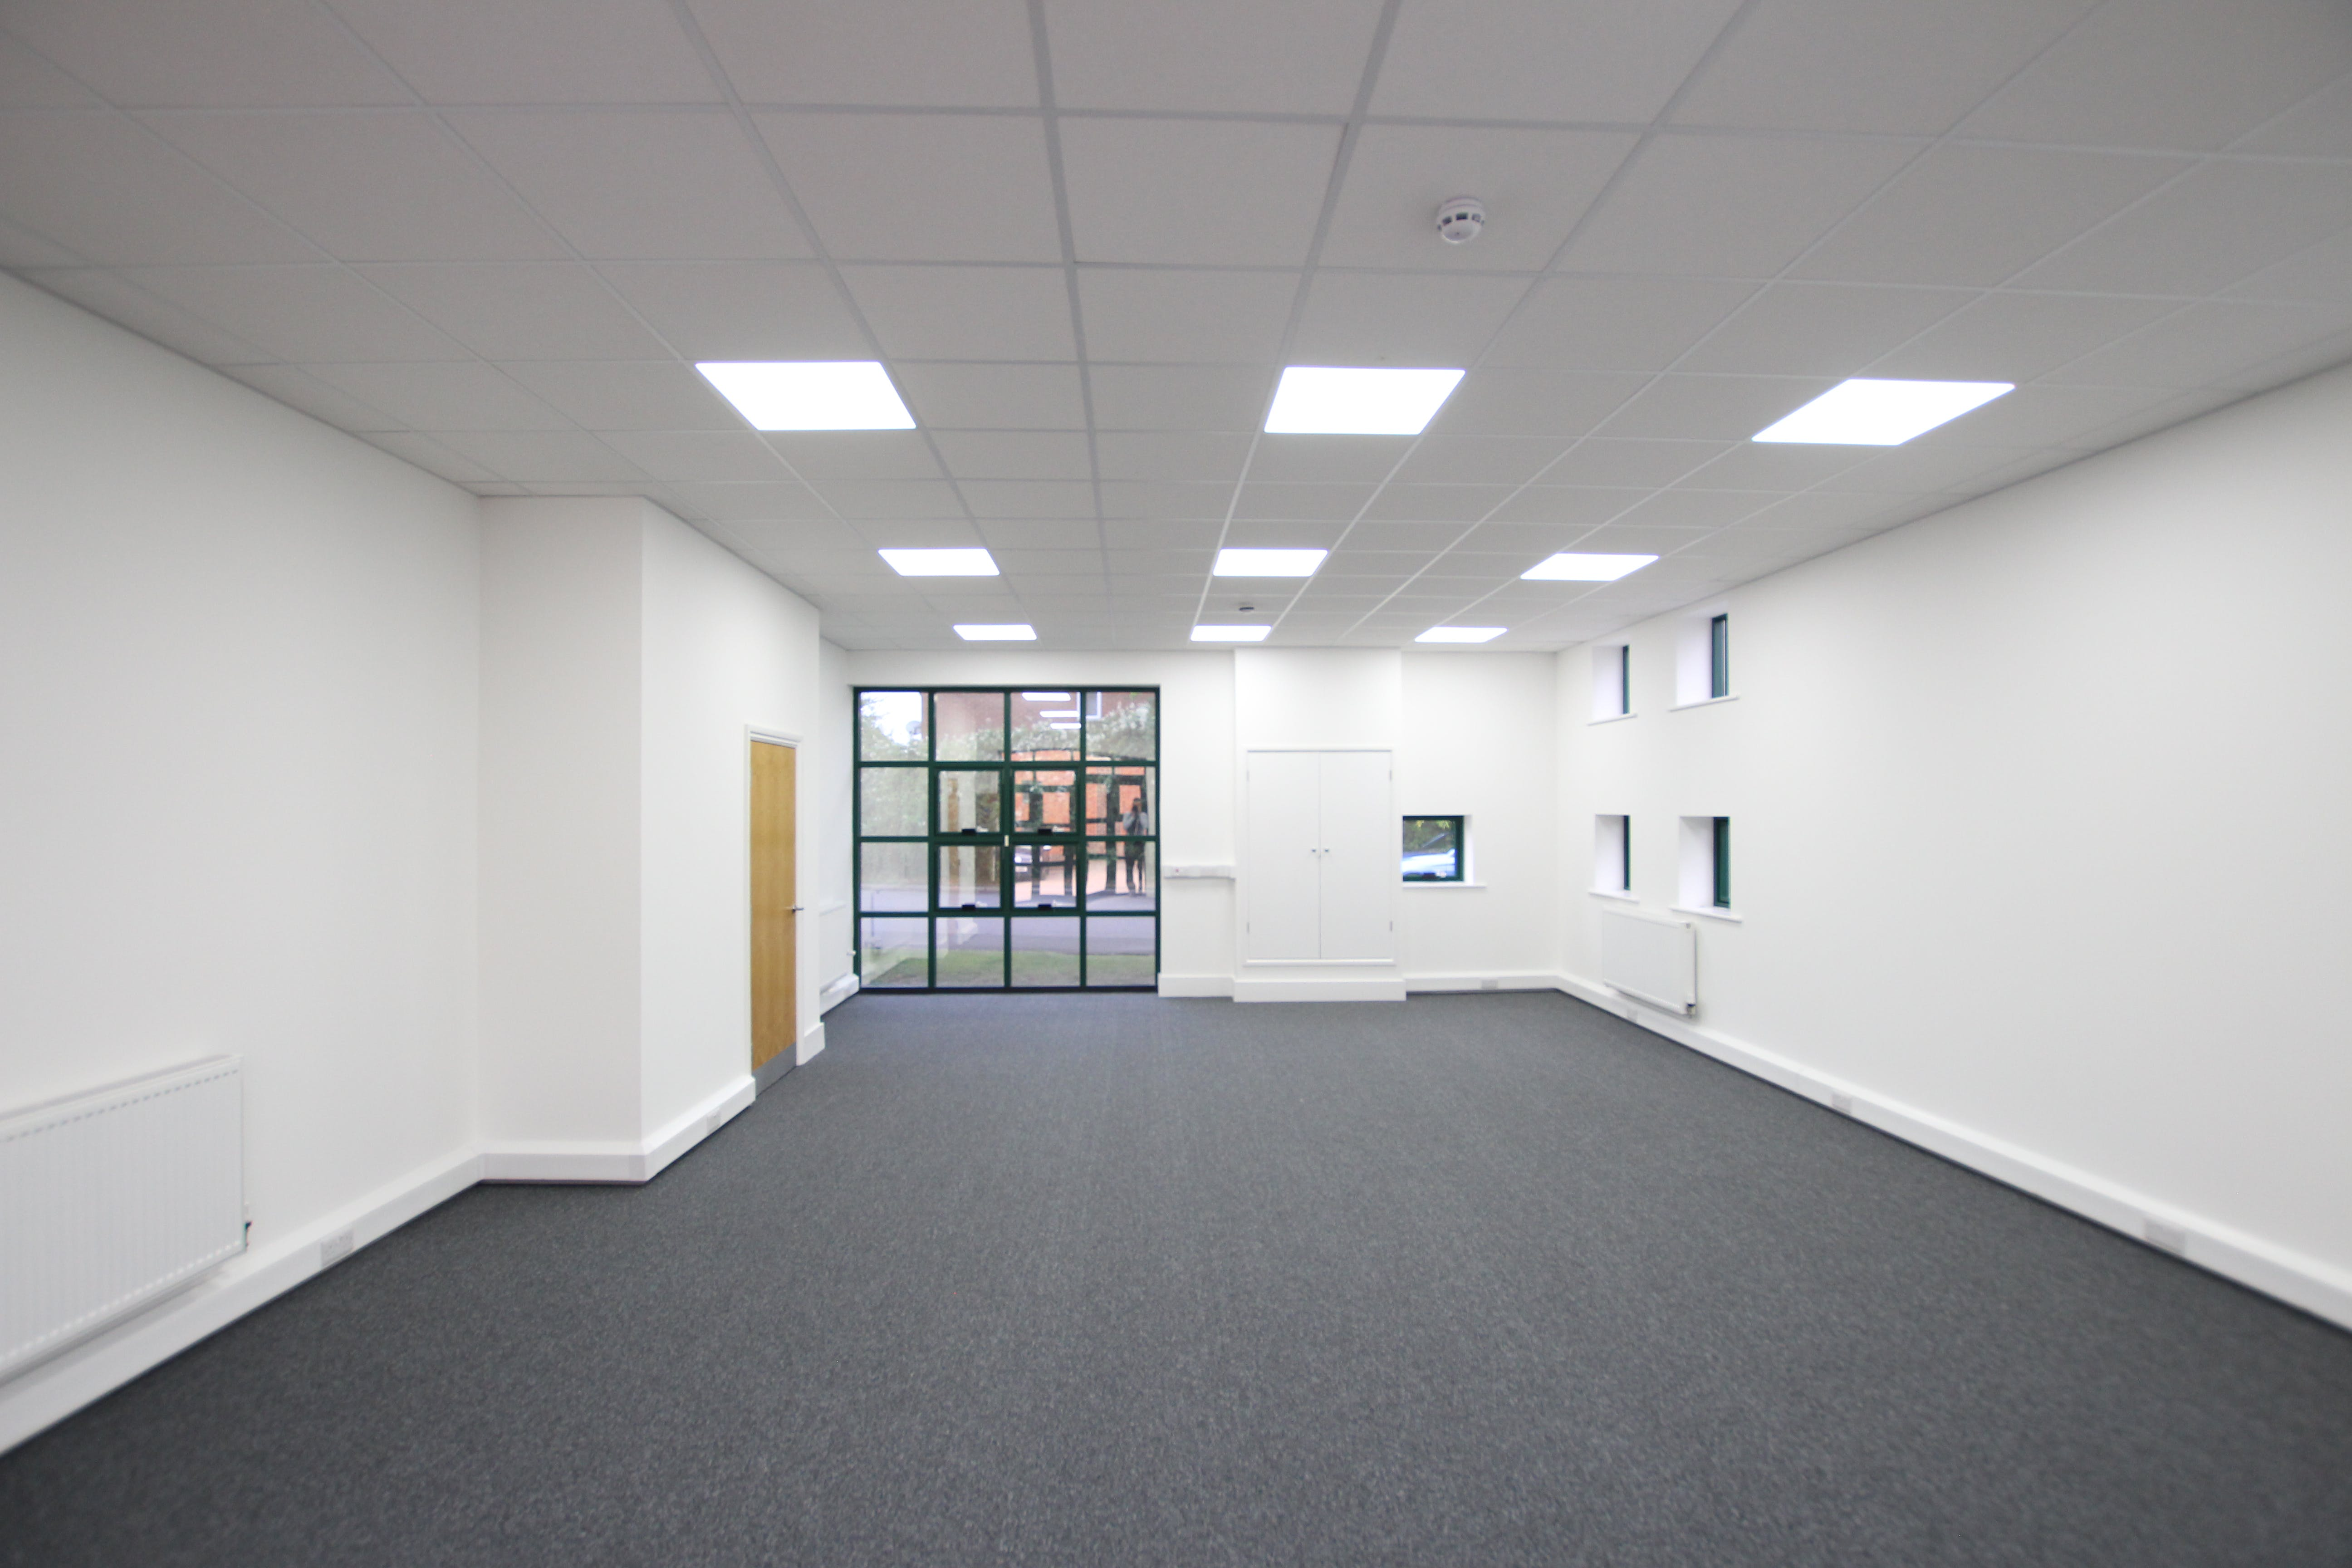 1 Hurlands Business Centre, Hurlands Close, Farnham, Offices To Let - IMG_1935.JPG